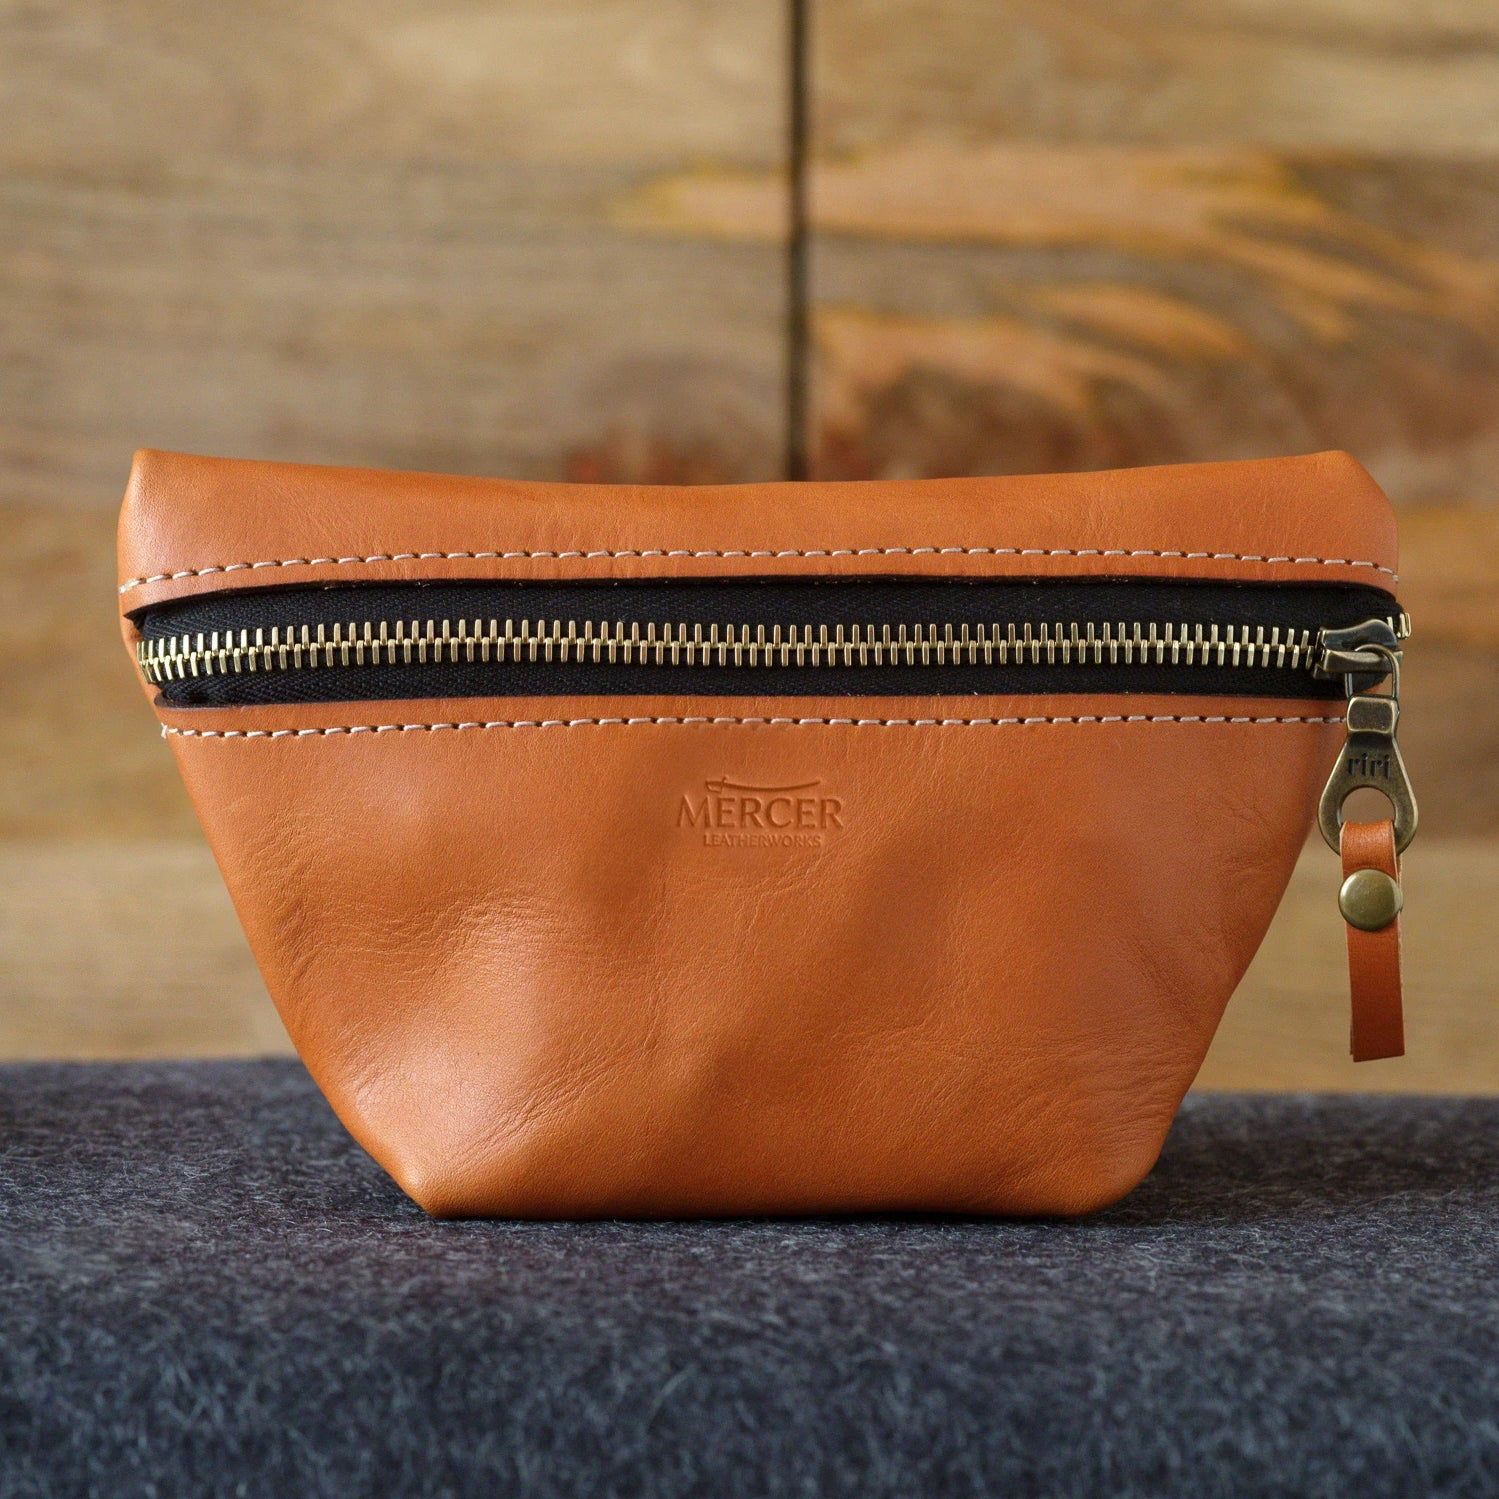 Bristol leather tote